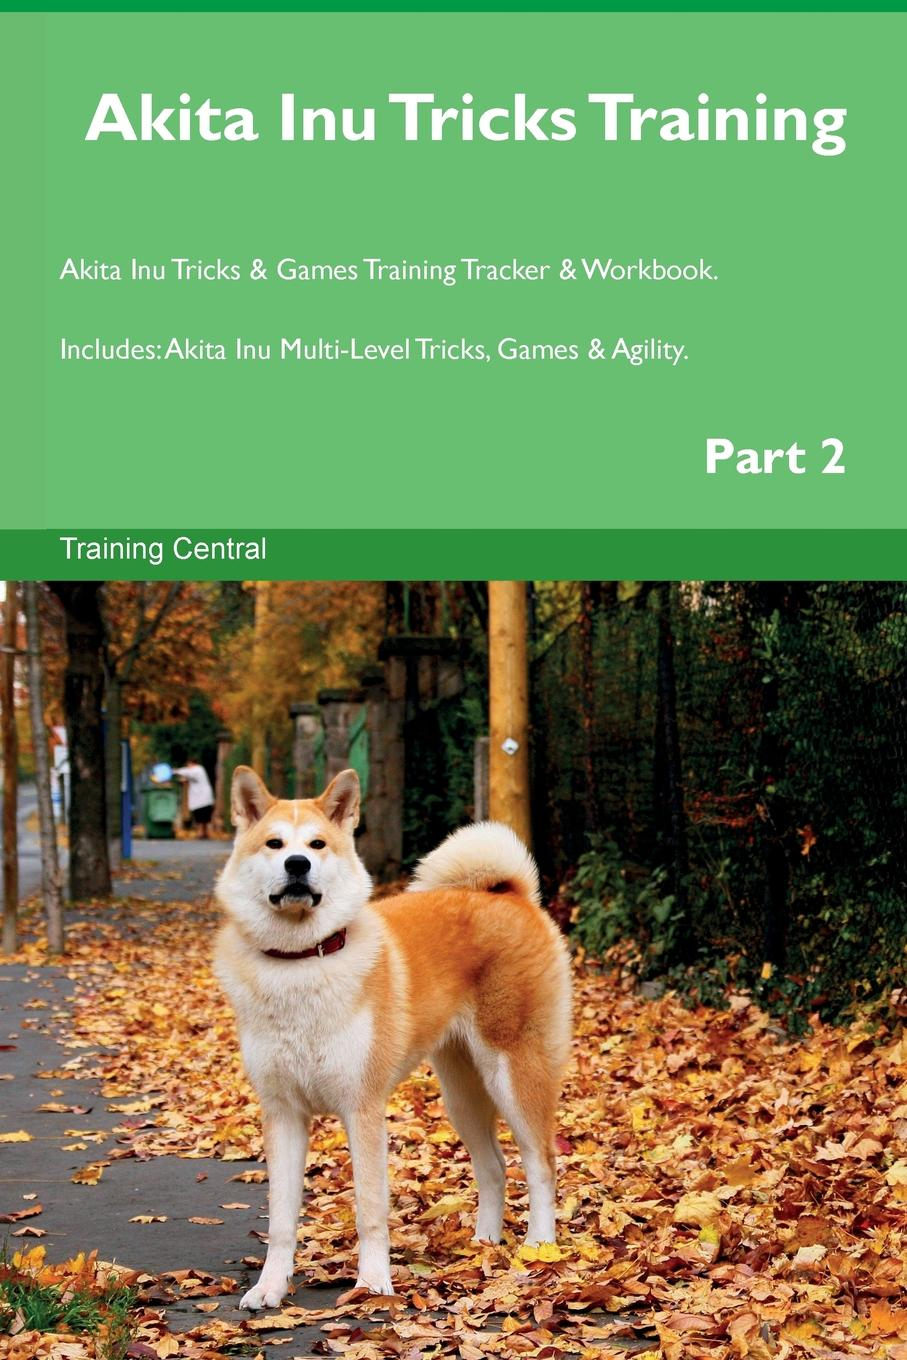 Training Central Akita Inu Tricks Training Akita Inu Tricks . Games Training Tracker . Workbook. Includes. Akita Inu Multi-Level Tricks, Games . Agility. Part 2 this book loves you